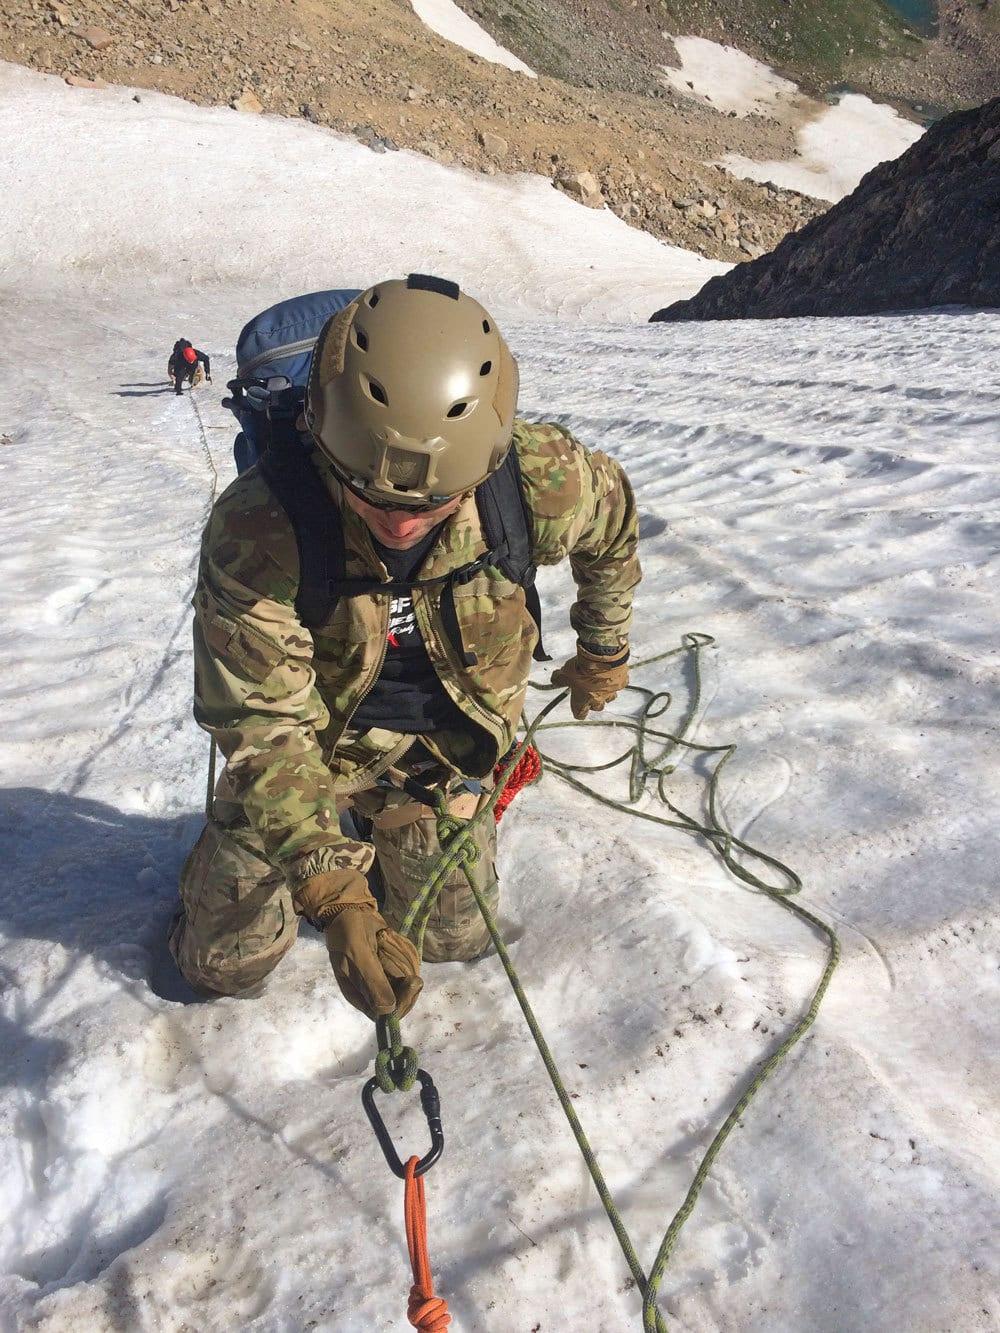 US Military training for high altitude mountaineering on alpine snow in Rocky Mountain National Park